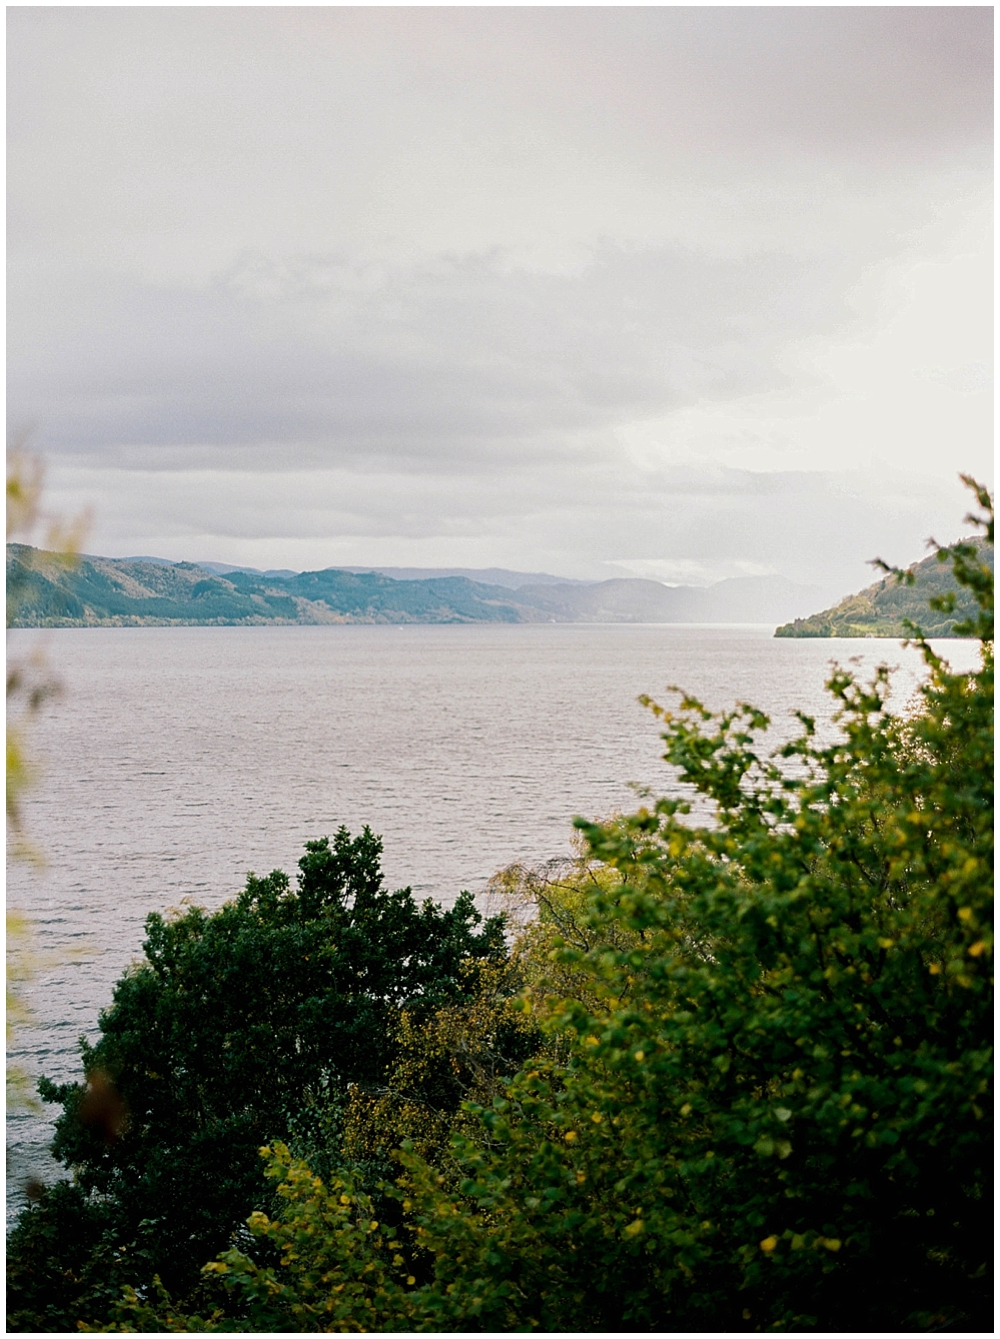 Fine Art Film Wedding Photographer | Sarah Carpenter Travel Photography | Scotland & Destination Worldwide